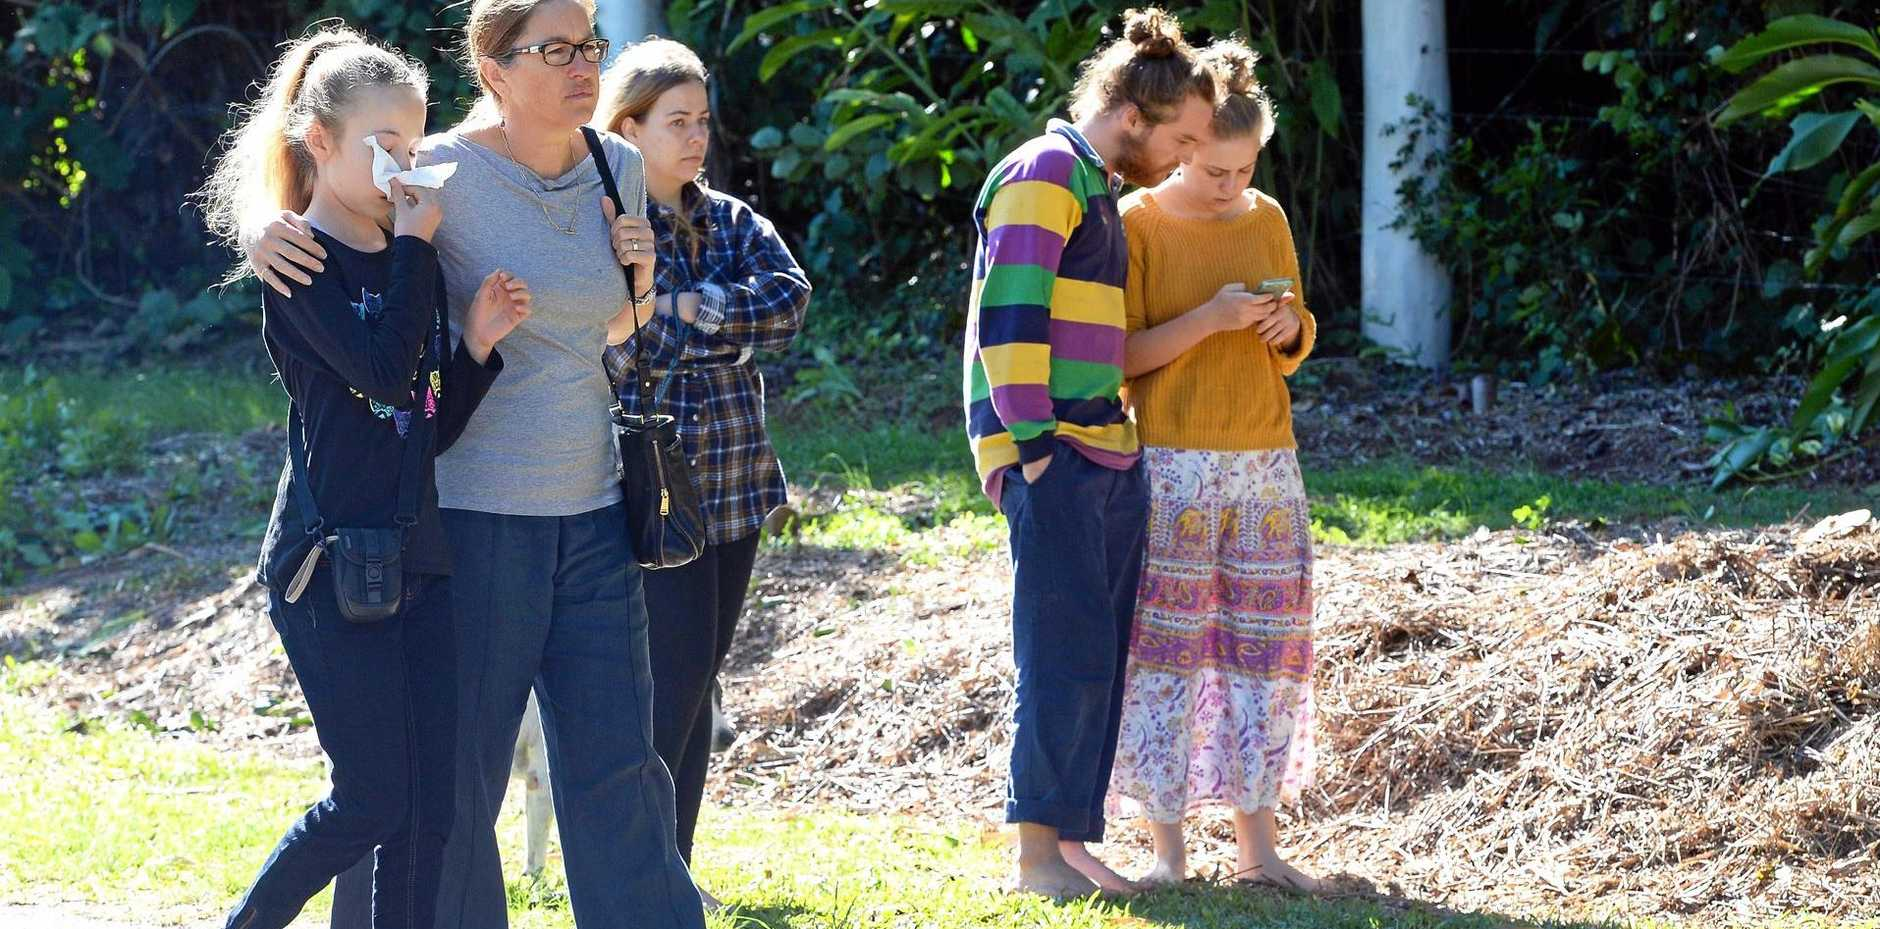 URBAN FOOD STREET CLEARED: Buderim fruit trees destroyed on one of the Sunshine Coast's most iconic streets, outraging residents, (foreground) Zoe Kamarainos and Lisa Edward.